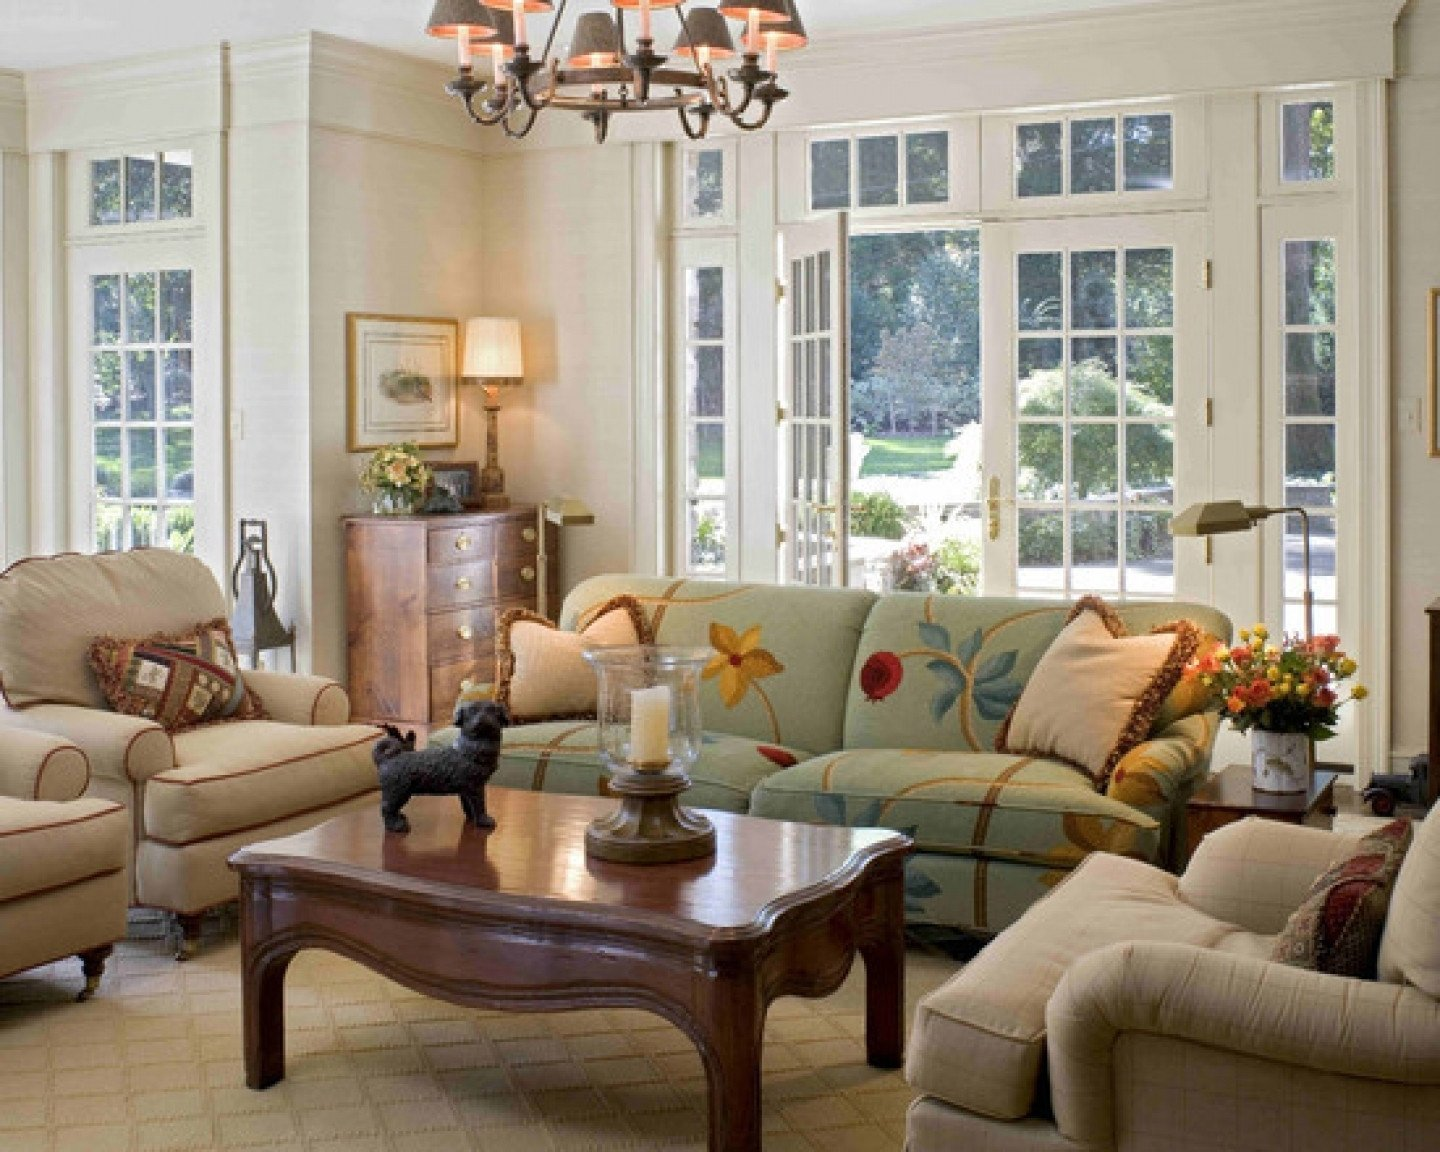 Modern Country Living Room Decorating Ideas 20 Best Classic Country Living Room Decor